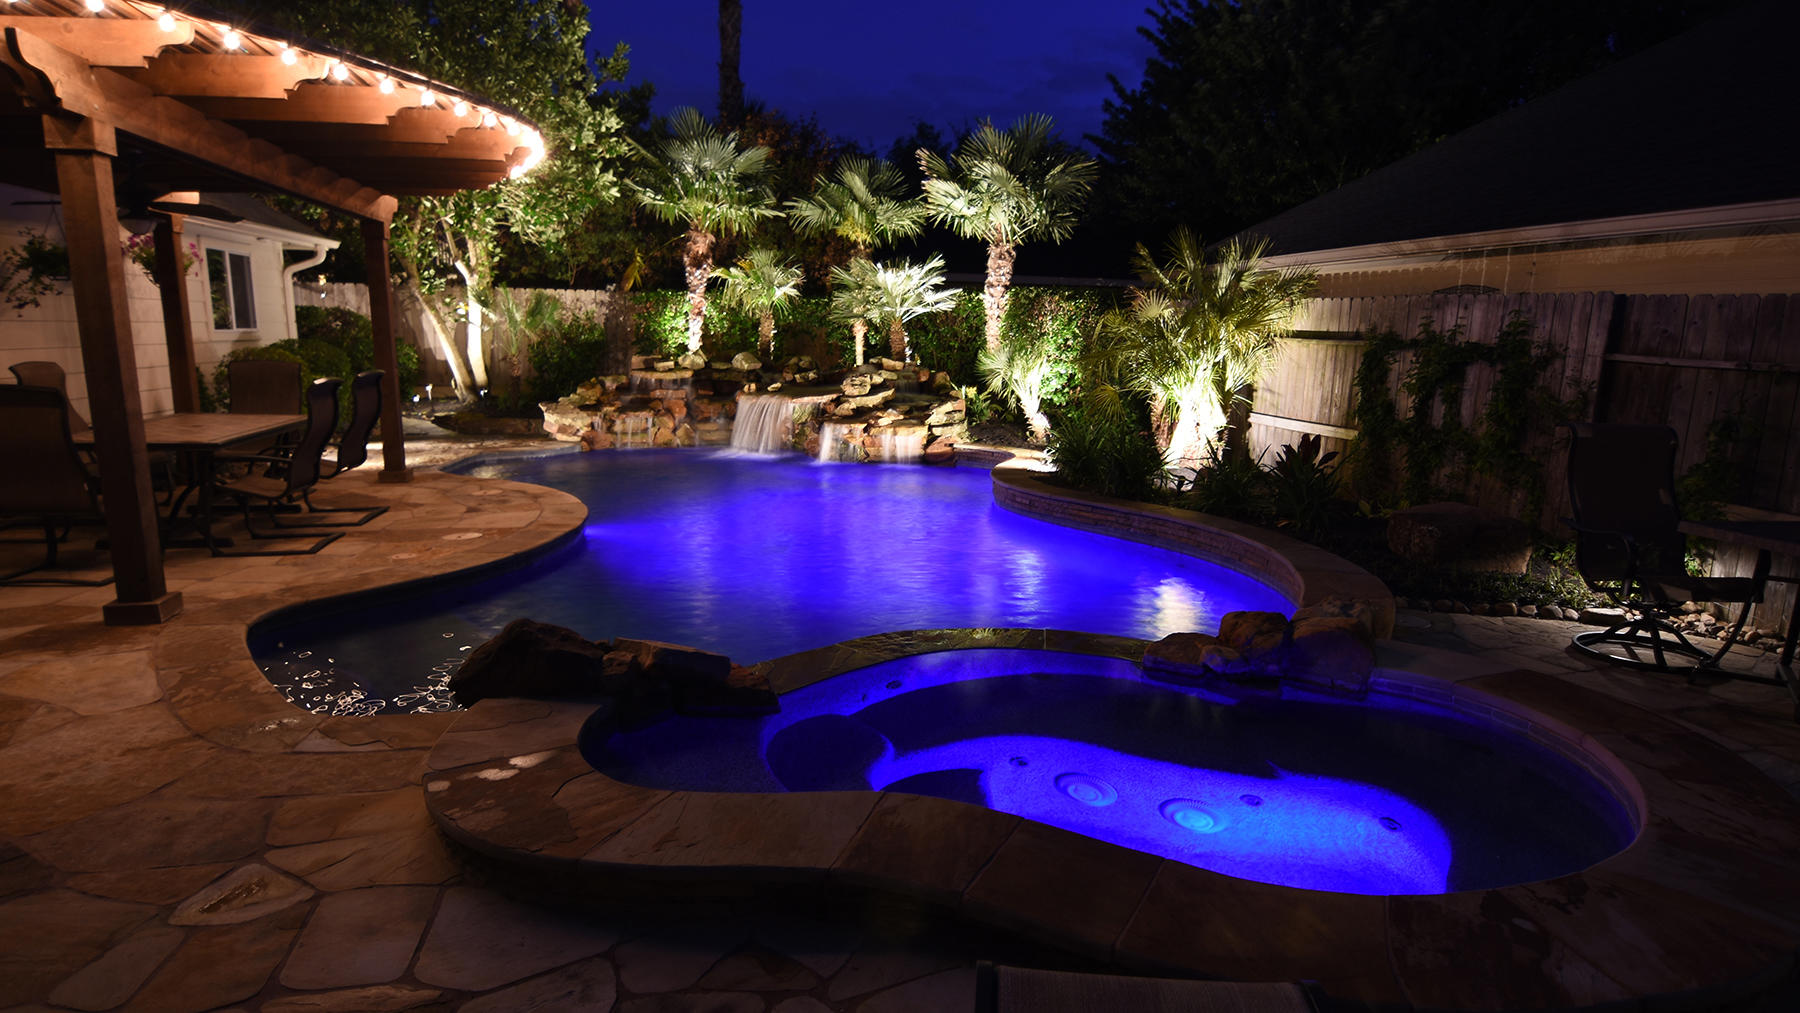 Pools Plus Llc Coupons Near Me In Katy 8coupons